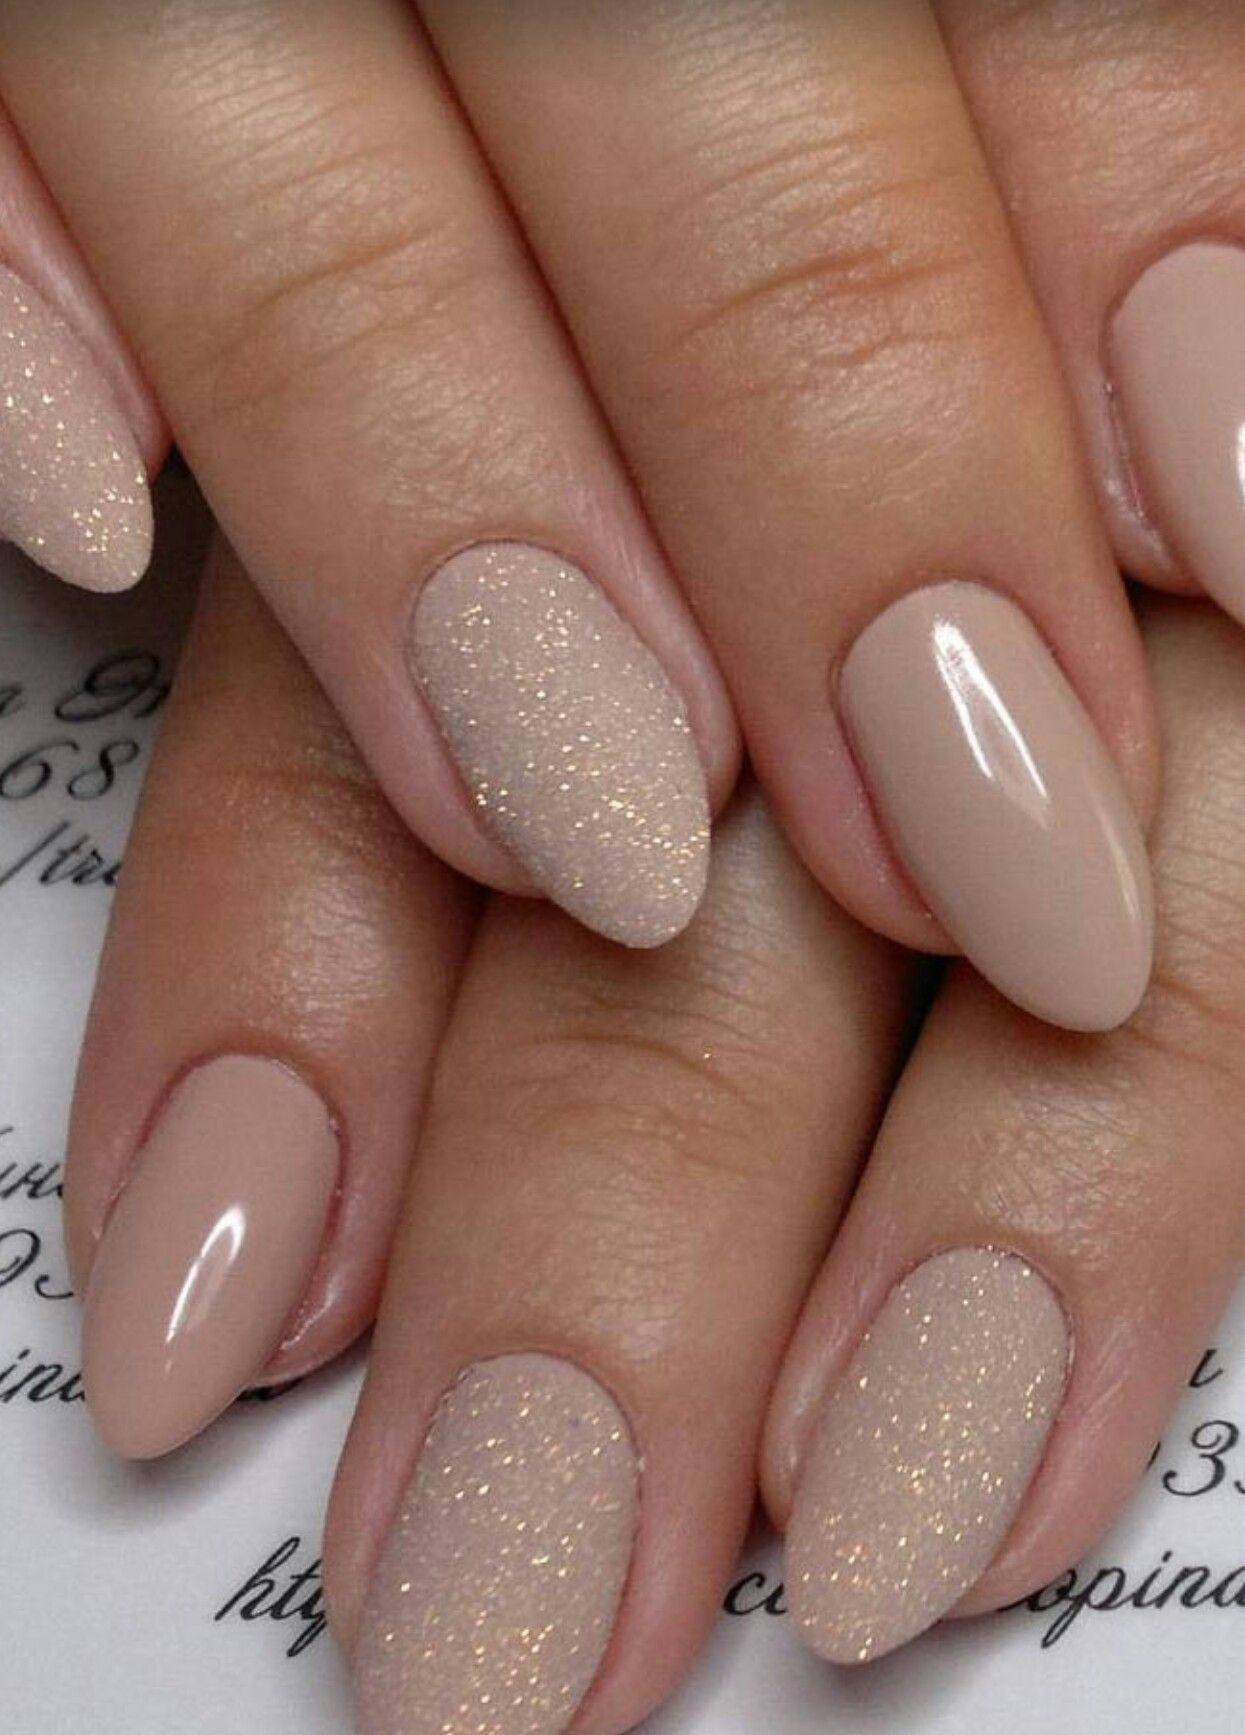 Pin by Heather Carey on Nails! | Pinterest | Manicure, Nail nail and ...